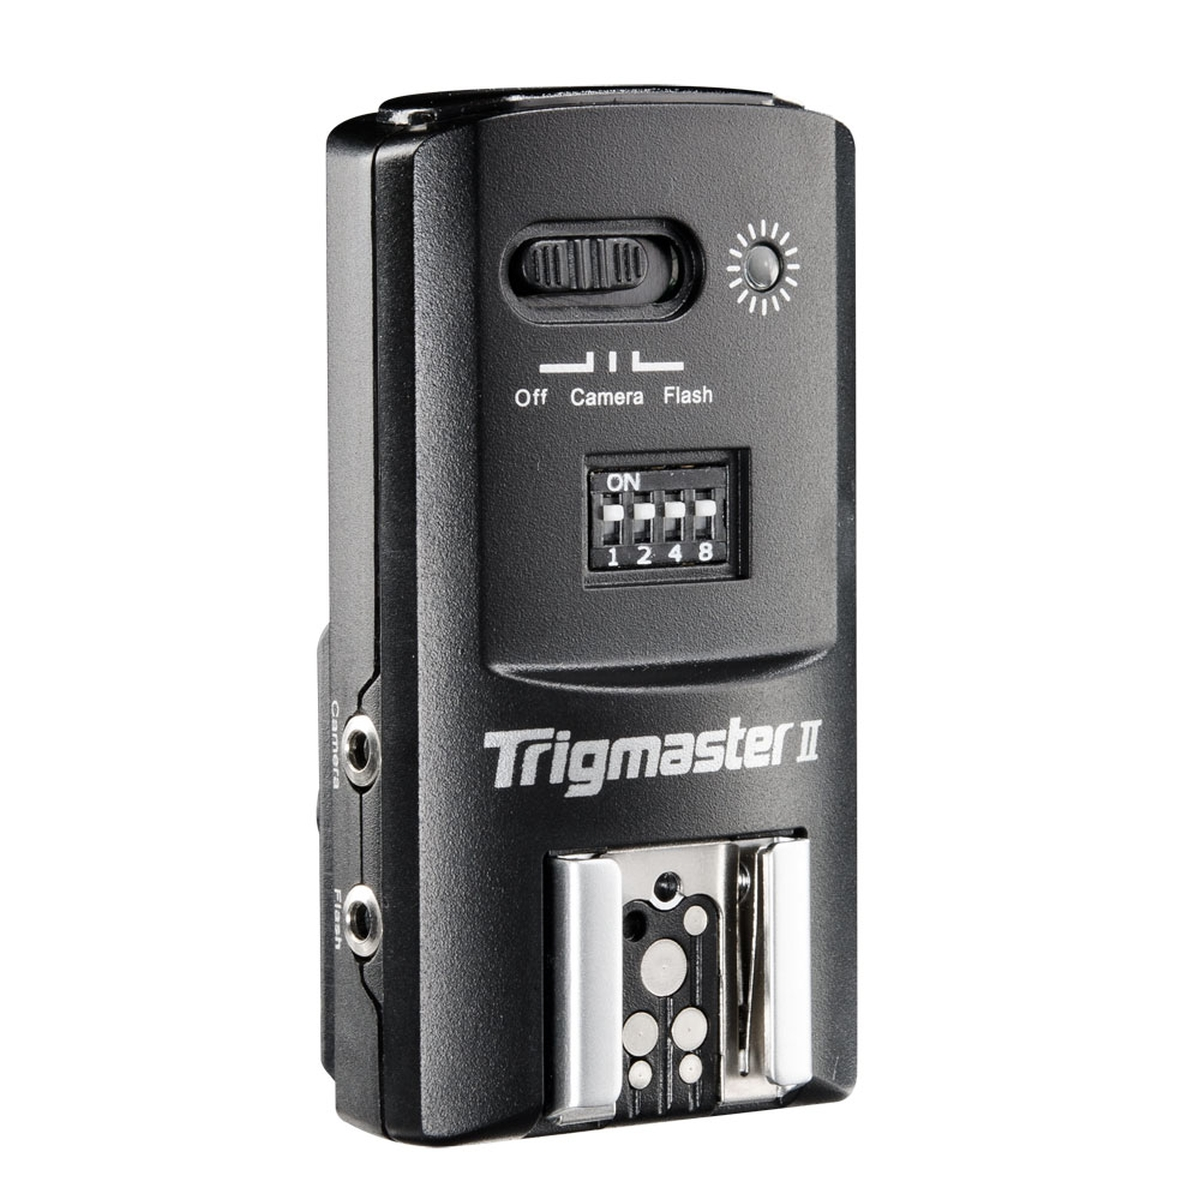 Aputure Trigmaster II 2.4G Receiver for Olympus